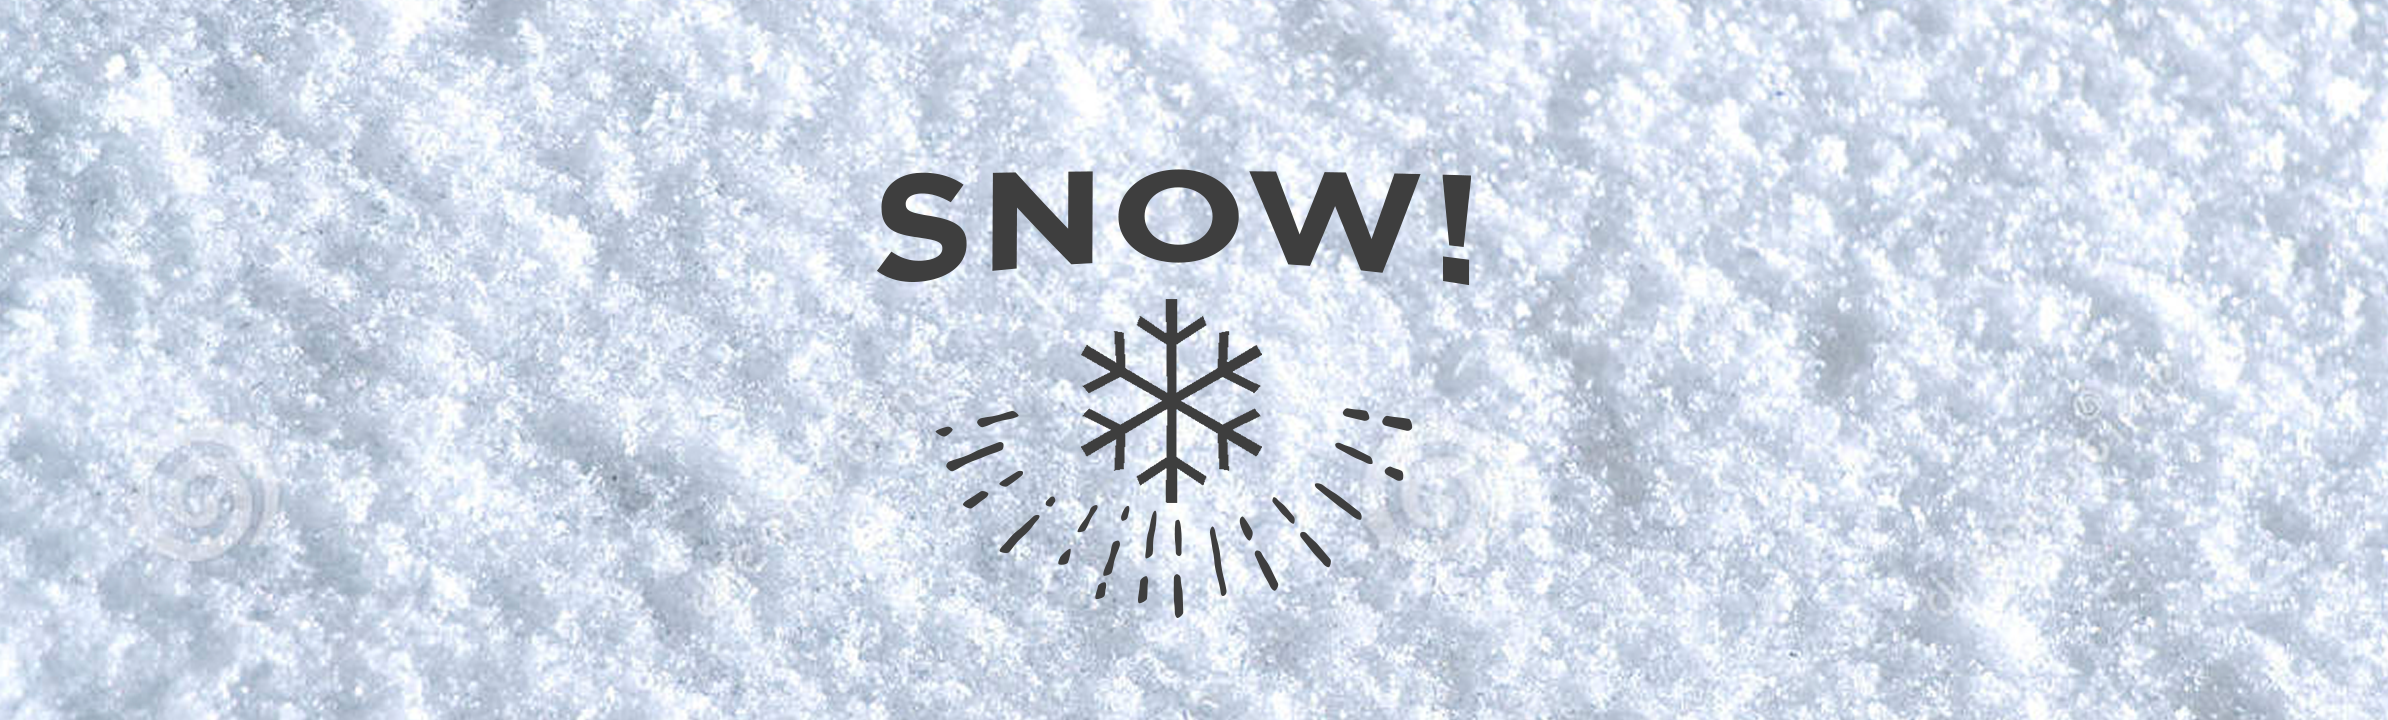 nwo-header Wednesday, February 18th, 2015 Snow Schedule